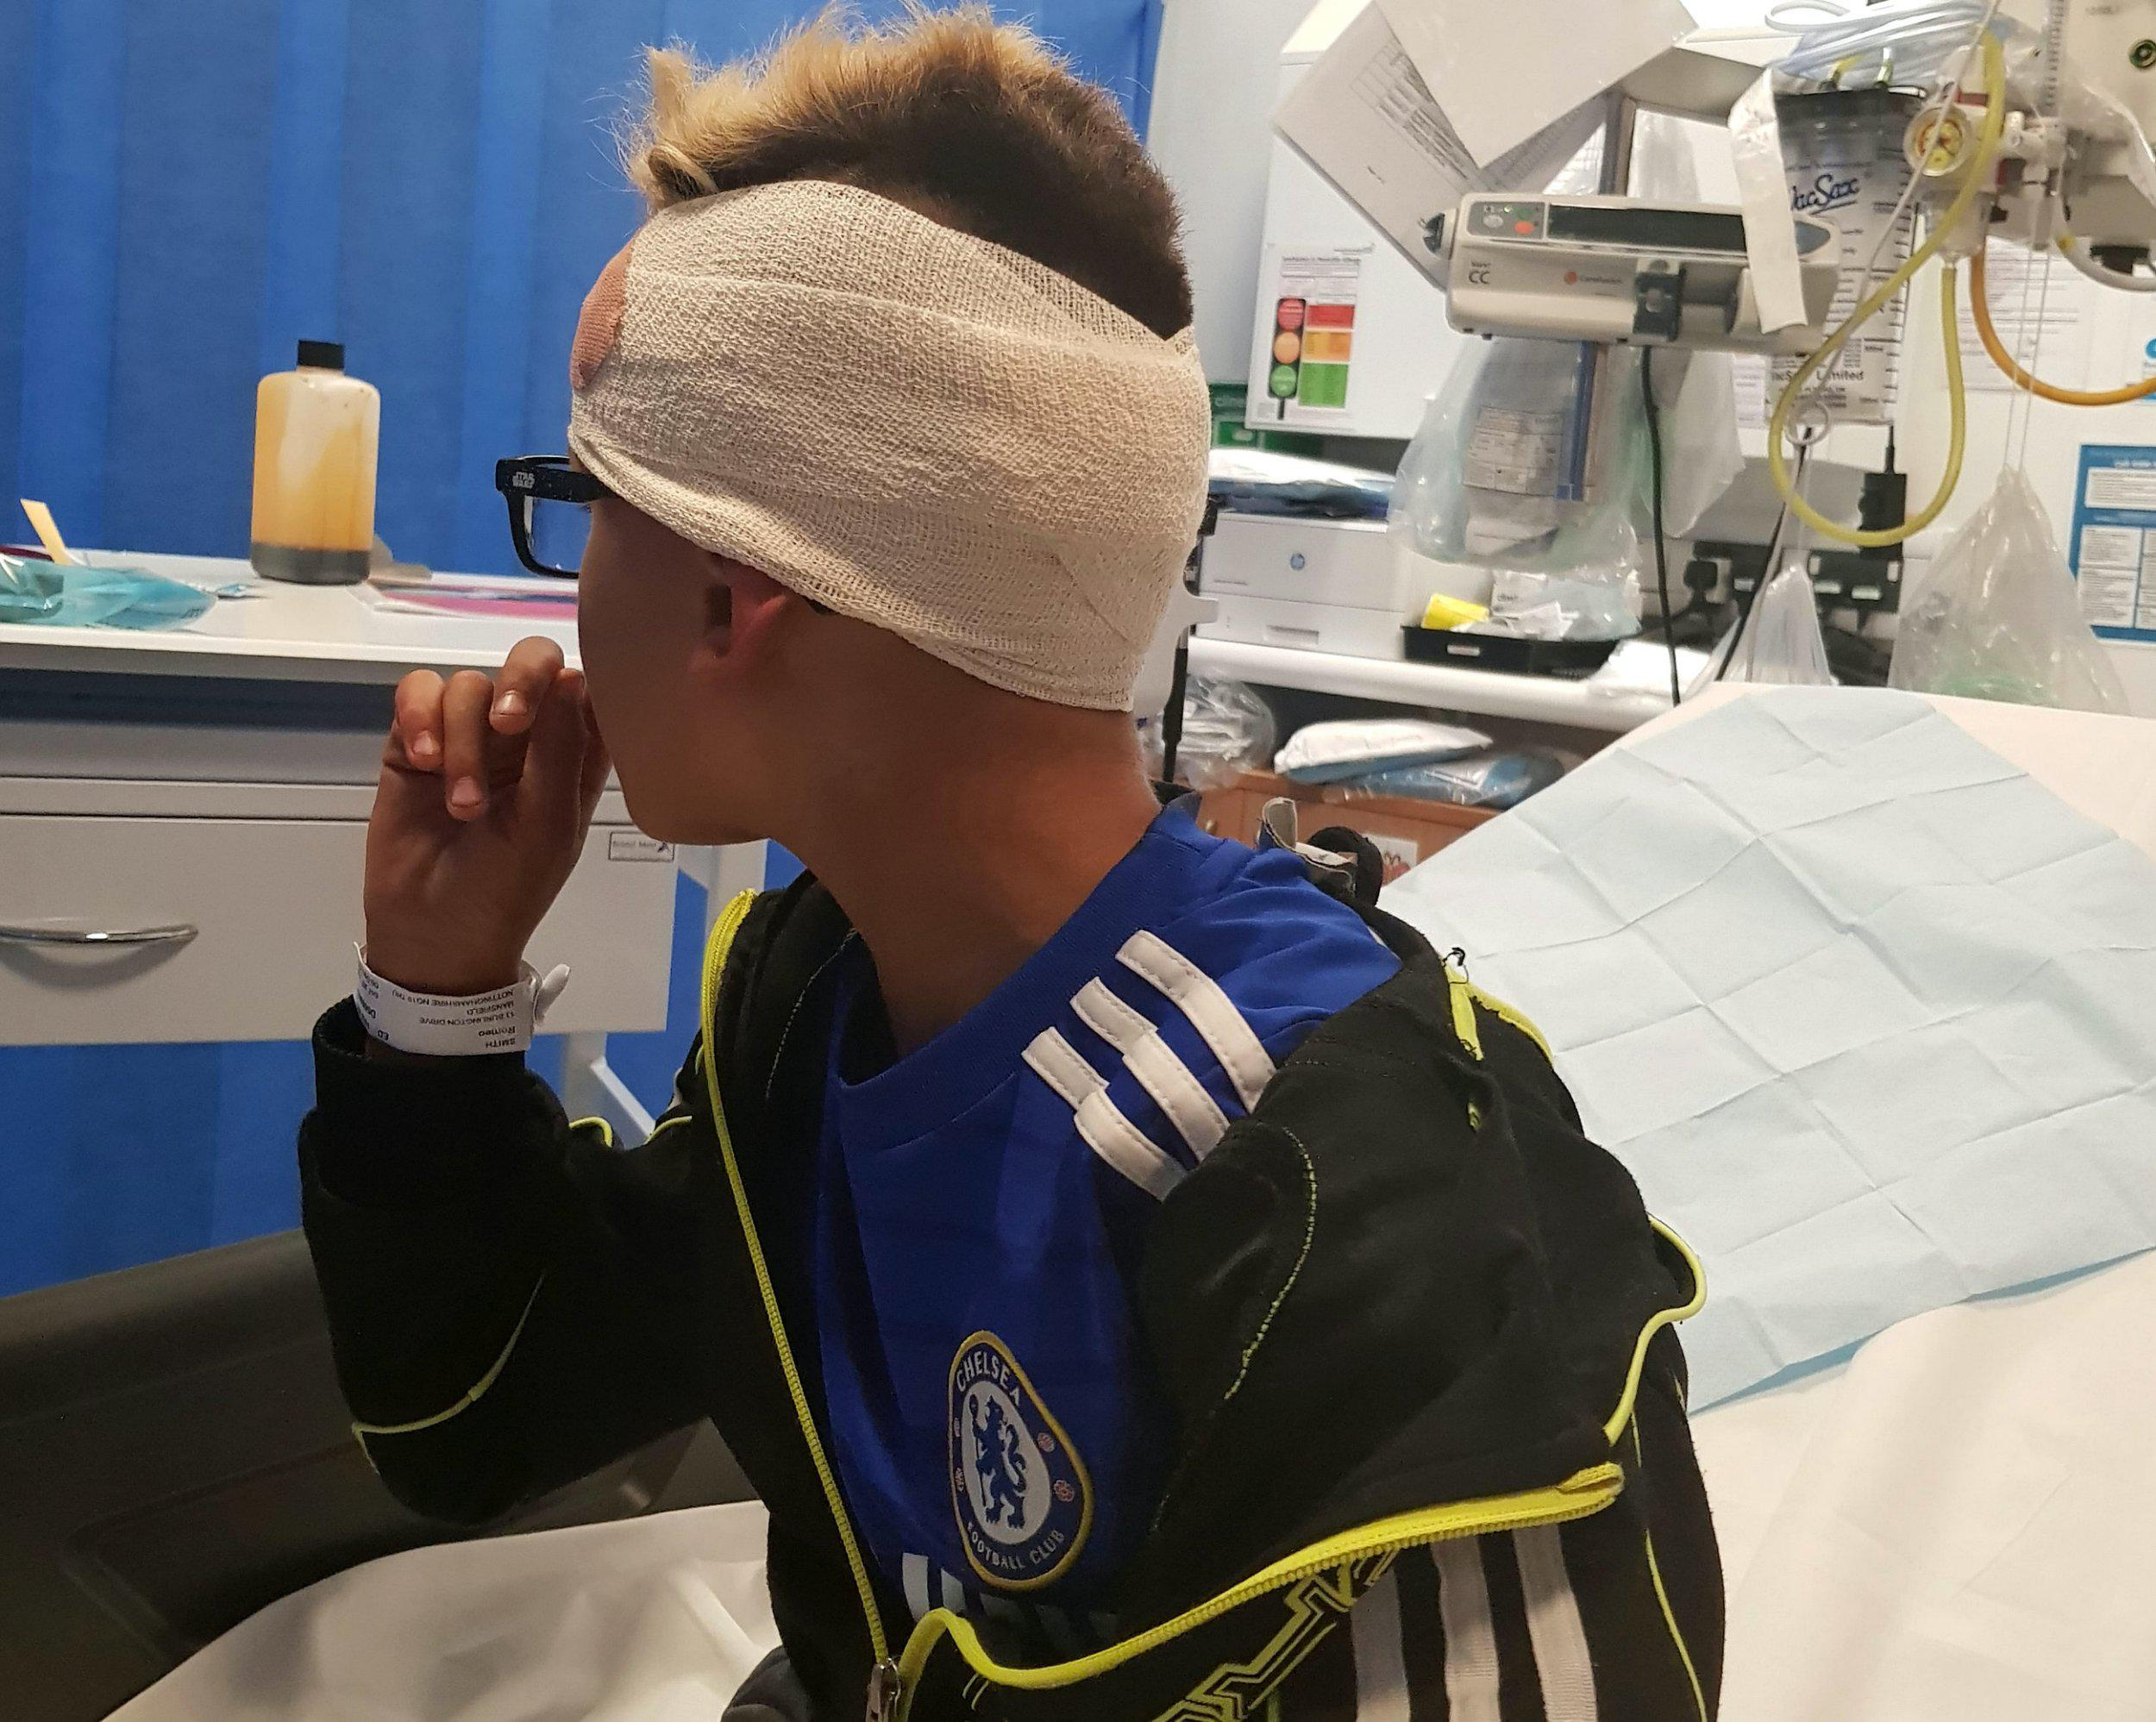 Boy, 9, has rusty nail impaled into his head by bullies